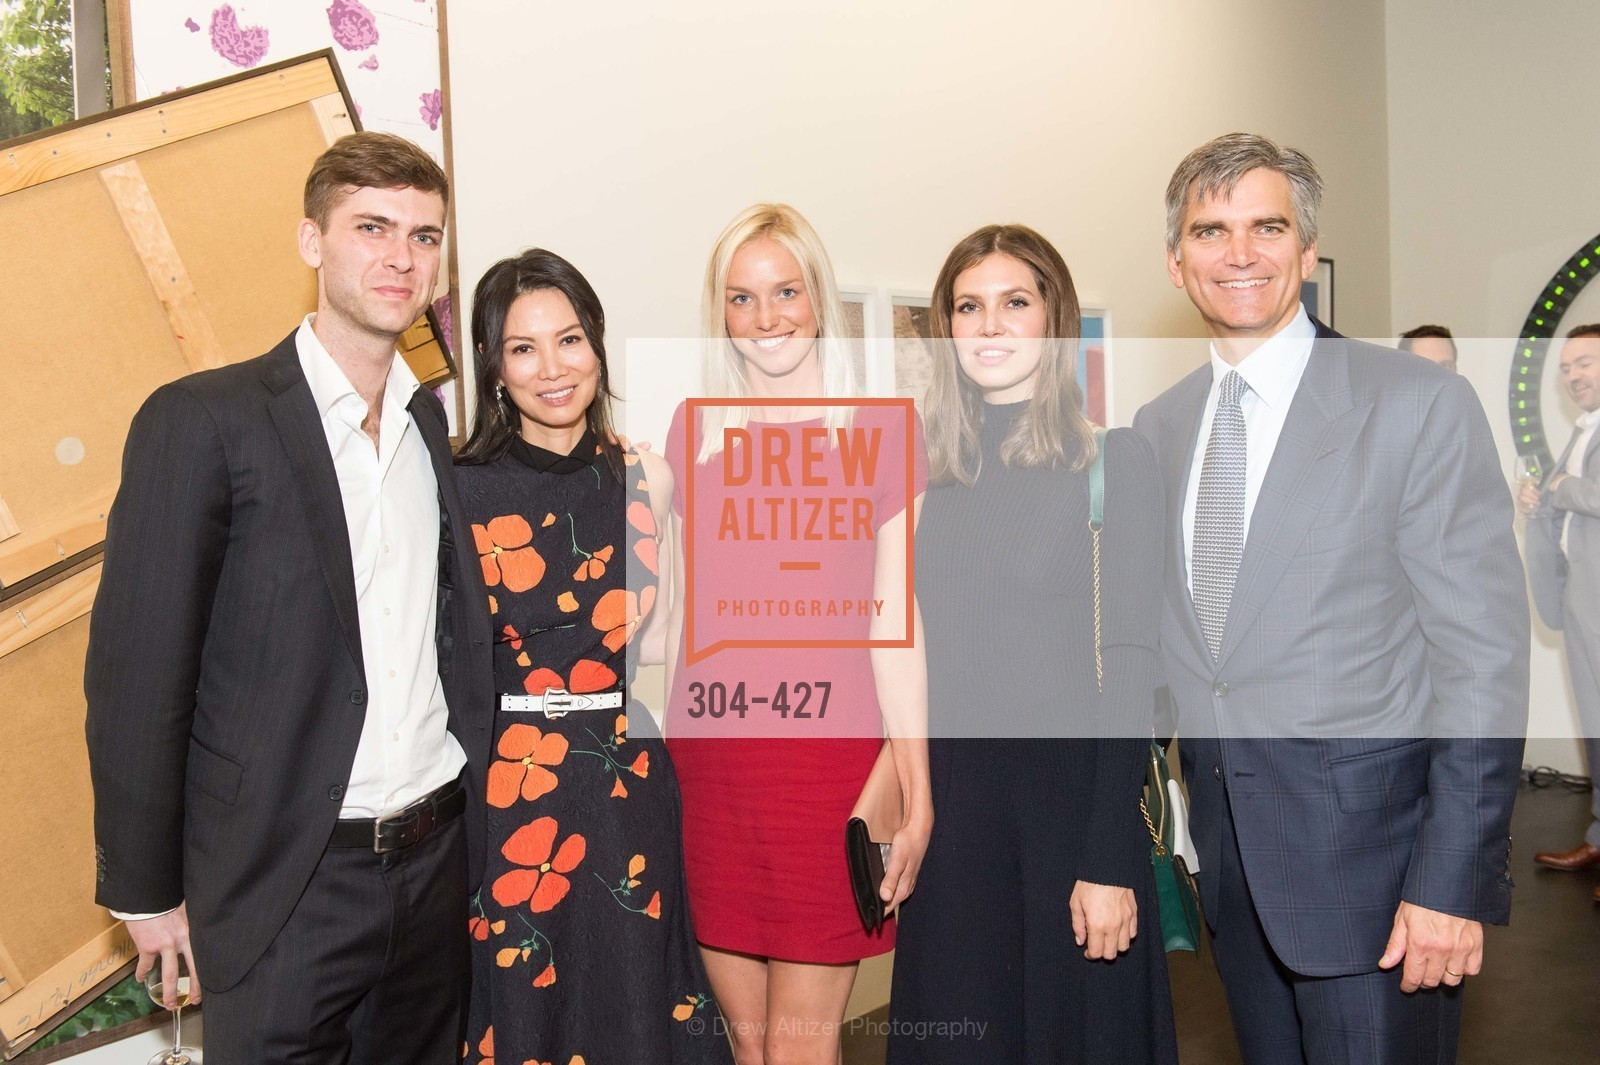 Carter Cleveland, Wendi Murdoch, Lucy Paige, Dasha Zhukova, Tad Smith, Artsy and Sotheby's Dinner at Fused, Fused, October 29th, 2015,Drew Altizer, Drew Altizer Photography, full-service agency, private events, San Francisco photographer, photographer california